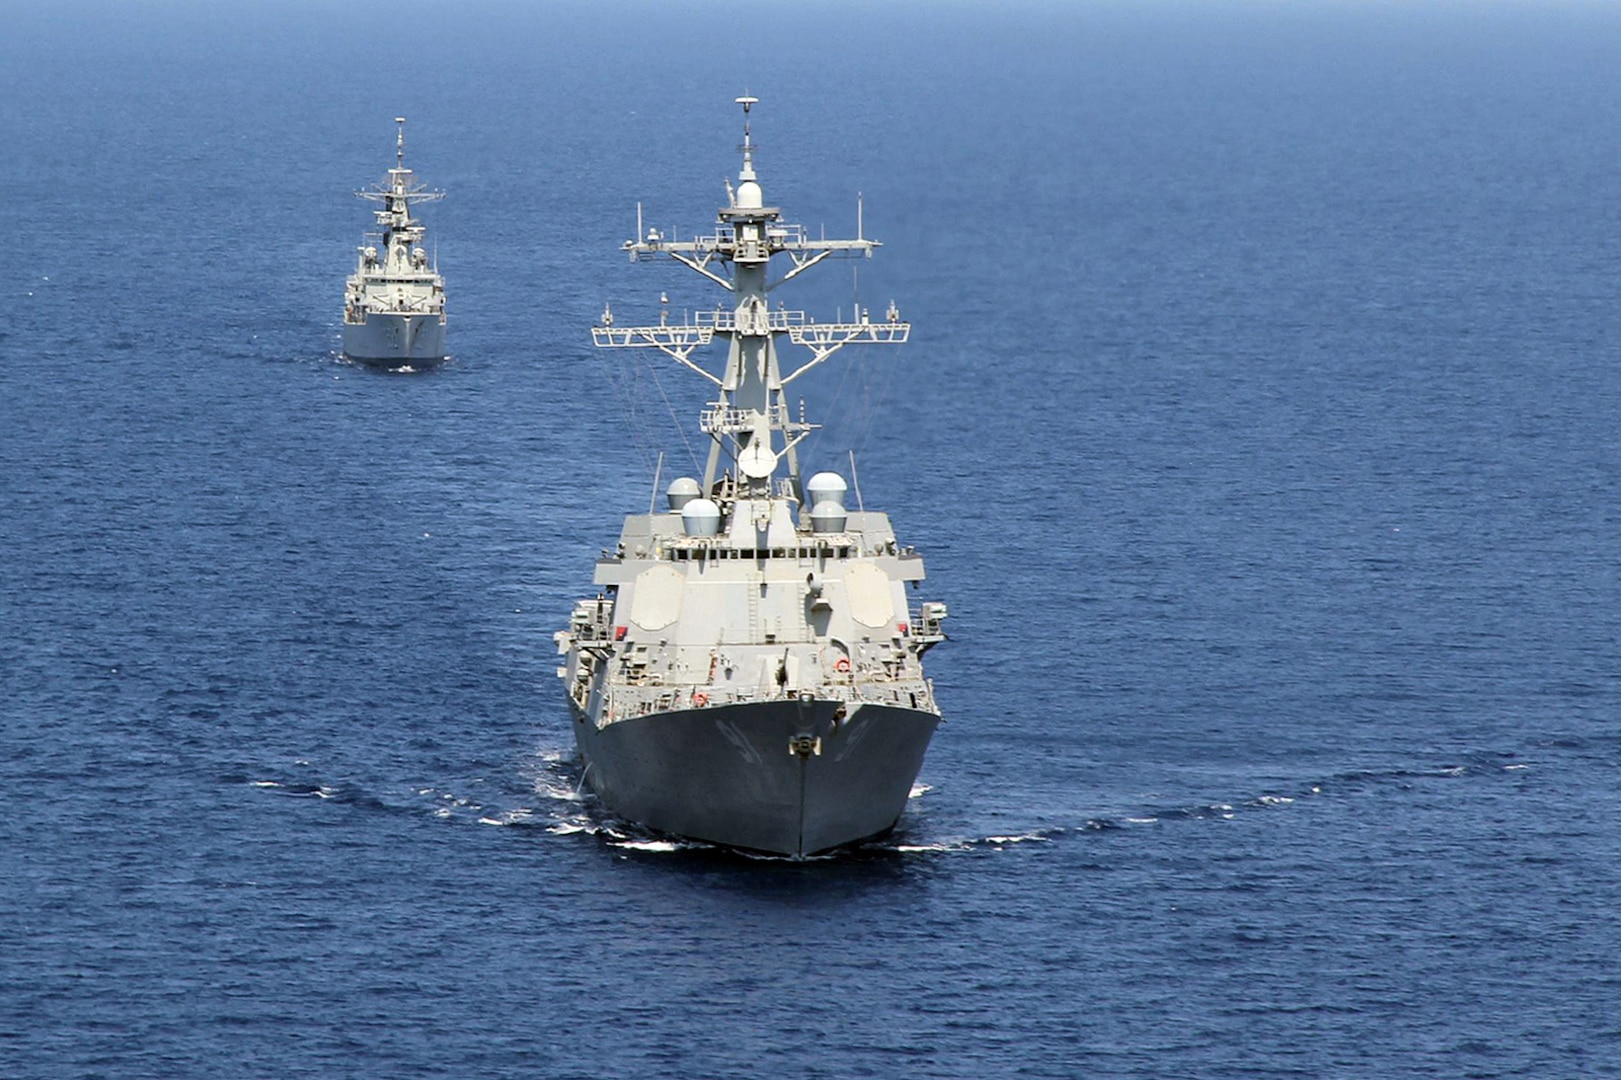 USS Pinckney to participate in ASEAN International Fleet Review